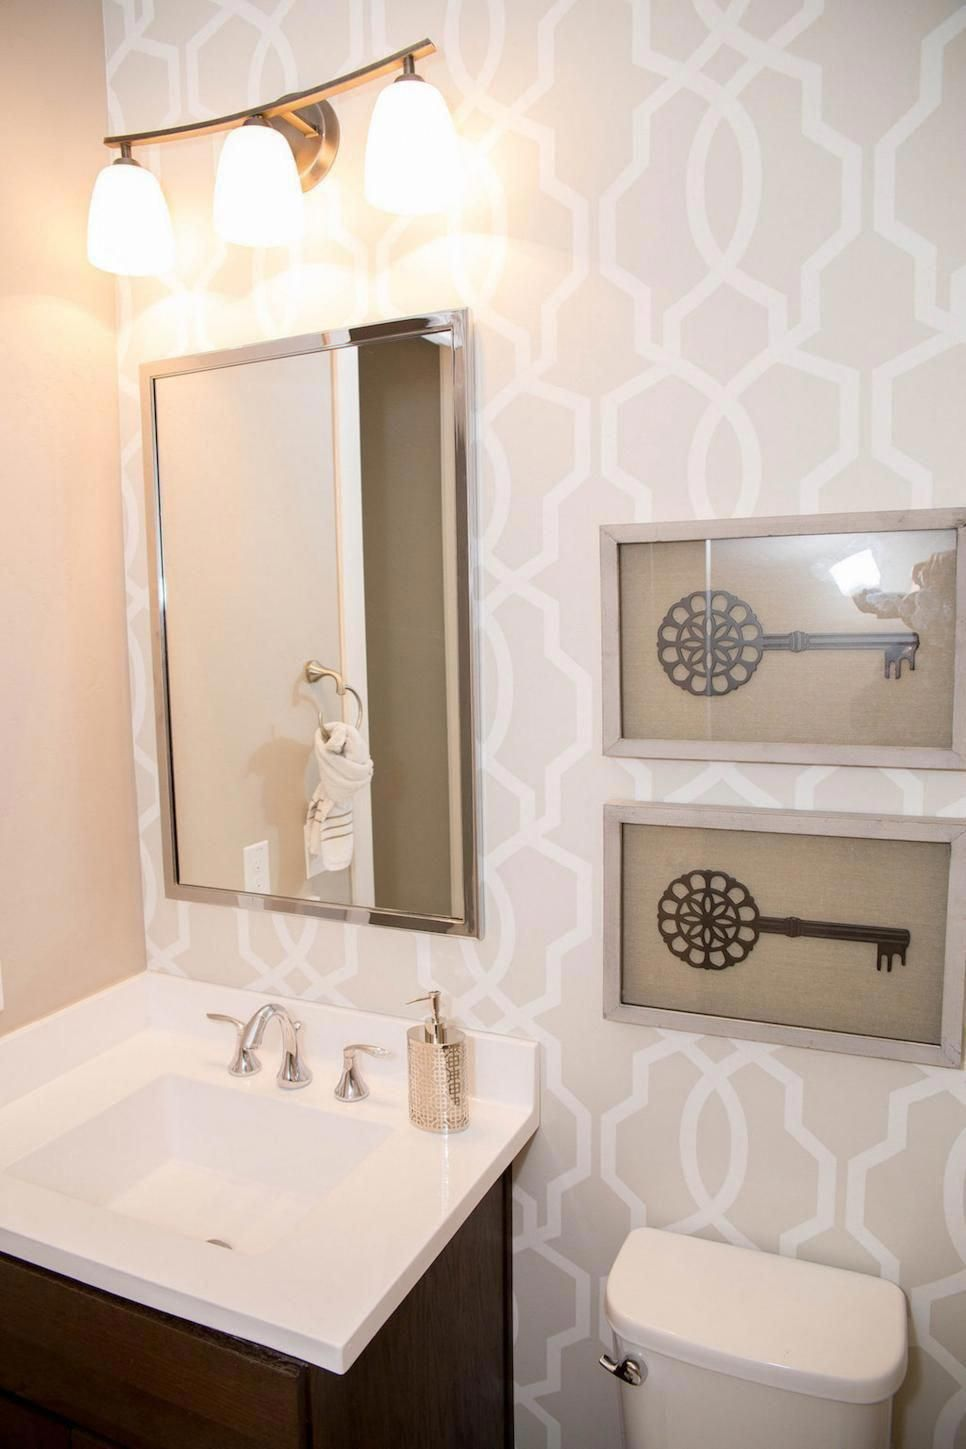 Neutral Graphic Wallpaper Takes This Small Bathroom From Basic To Chic Bathroomorganiz Small Bathroom Trends Small Bathroom Remodel Small Bathroom Wallpaper